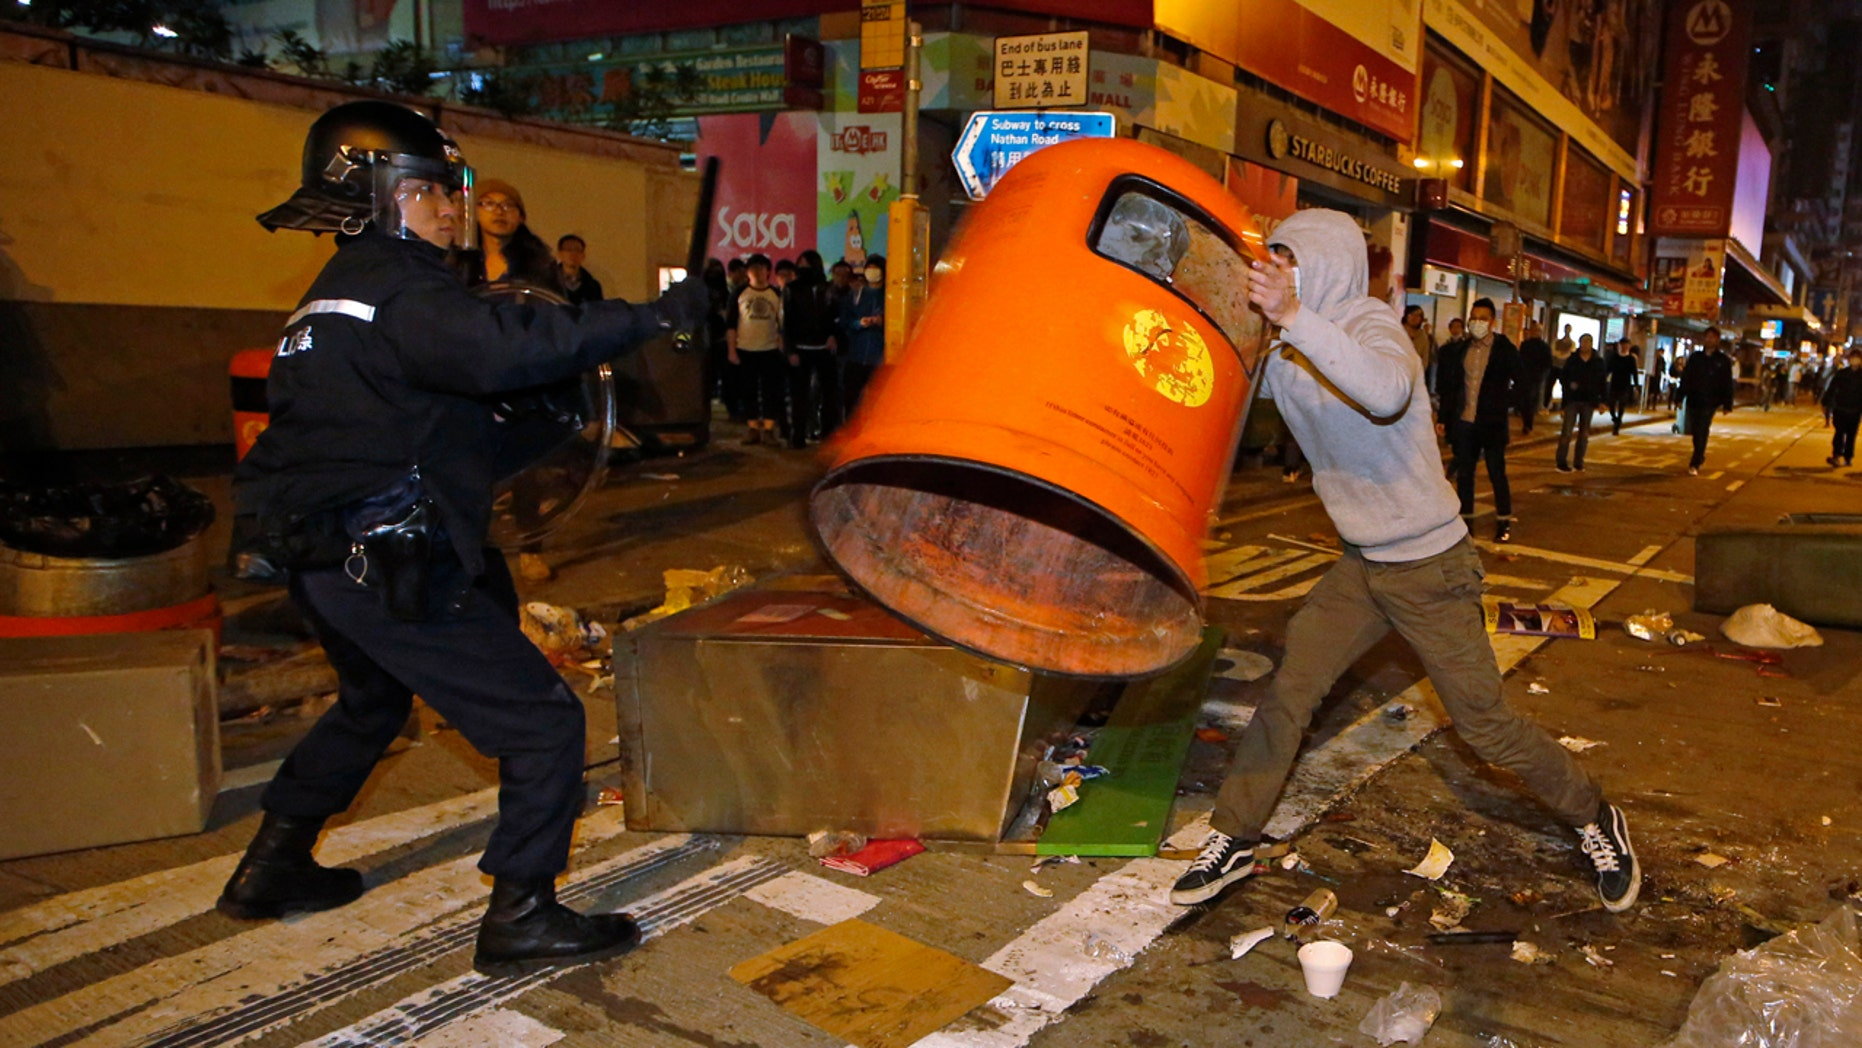 Feb. 9, 2016: A rioter tries to throw a litter bin at police on a street in Mong Kok district of Hong Kong. (AP Photo/Kin Cheung)